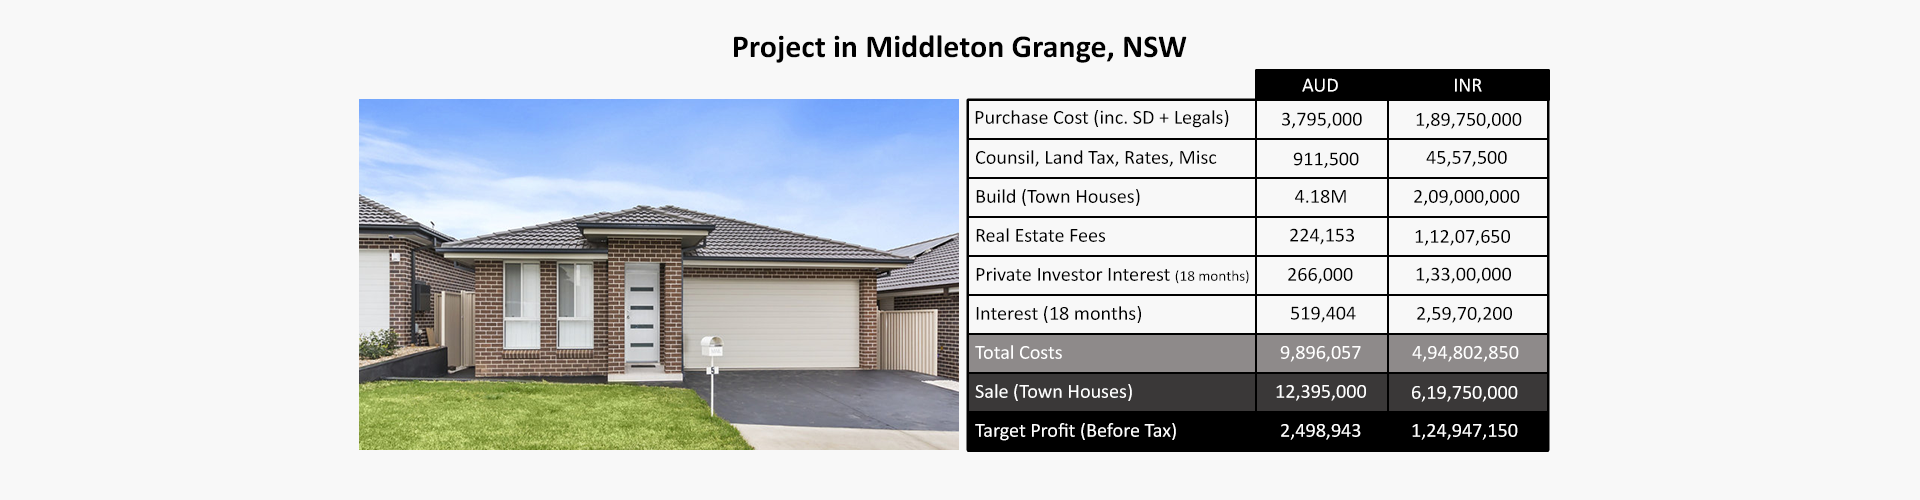 Project in Middleton